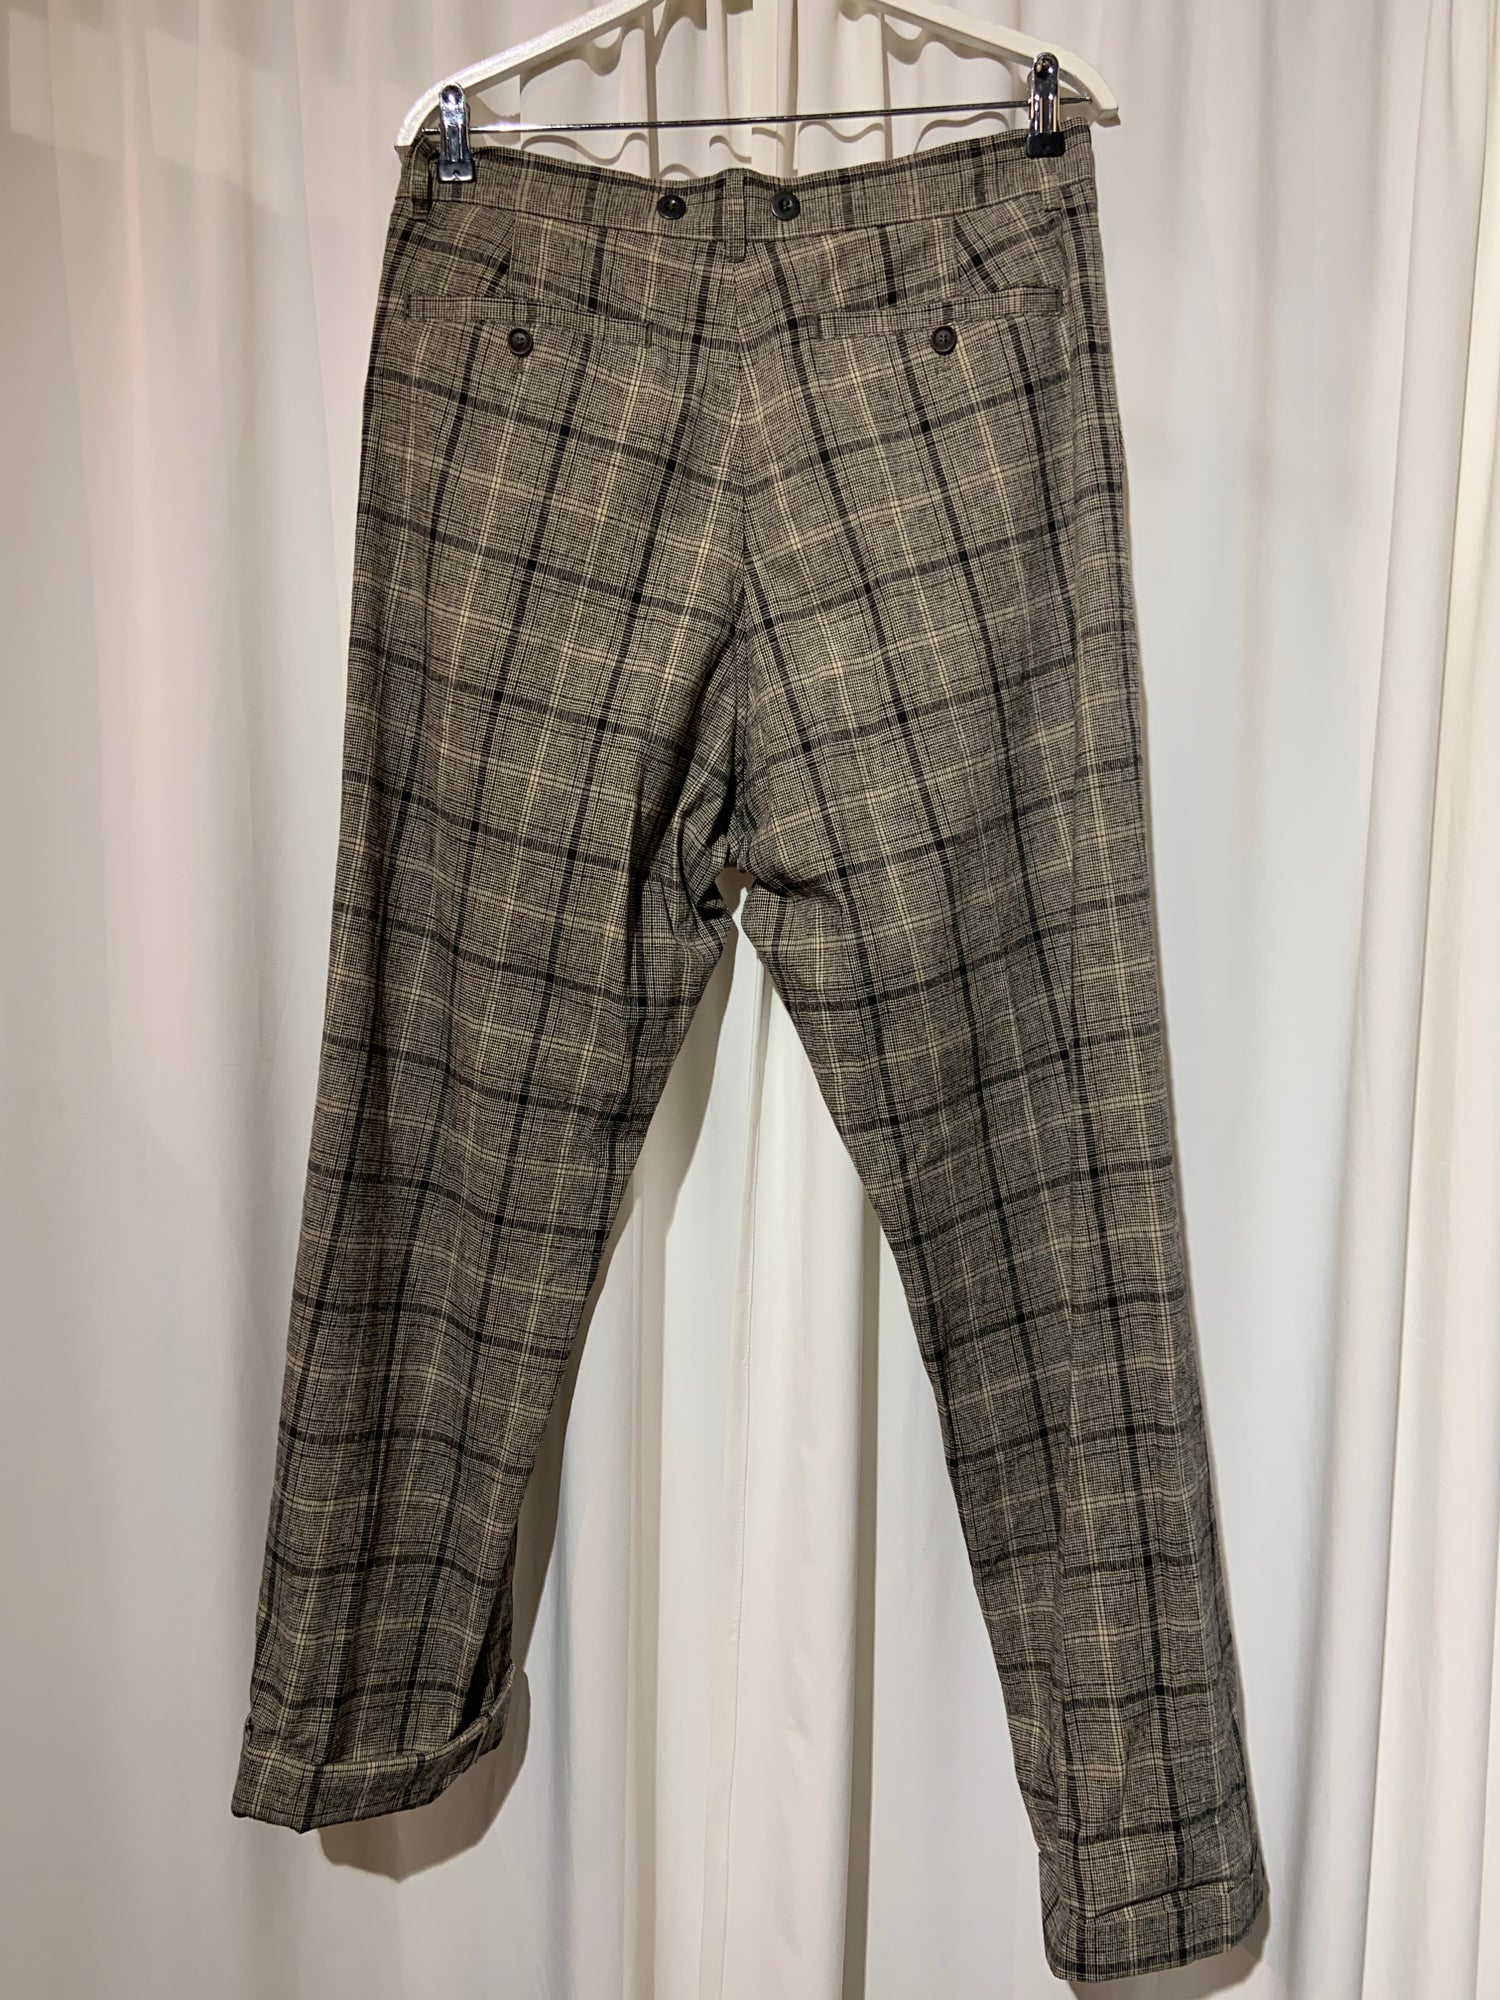 Image of HANSEN GARMENTS Sune Trousers checkered